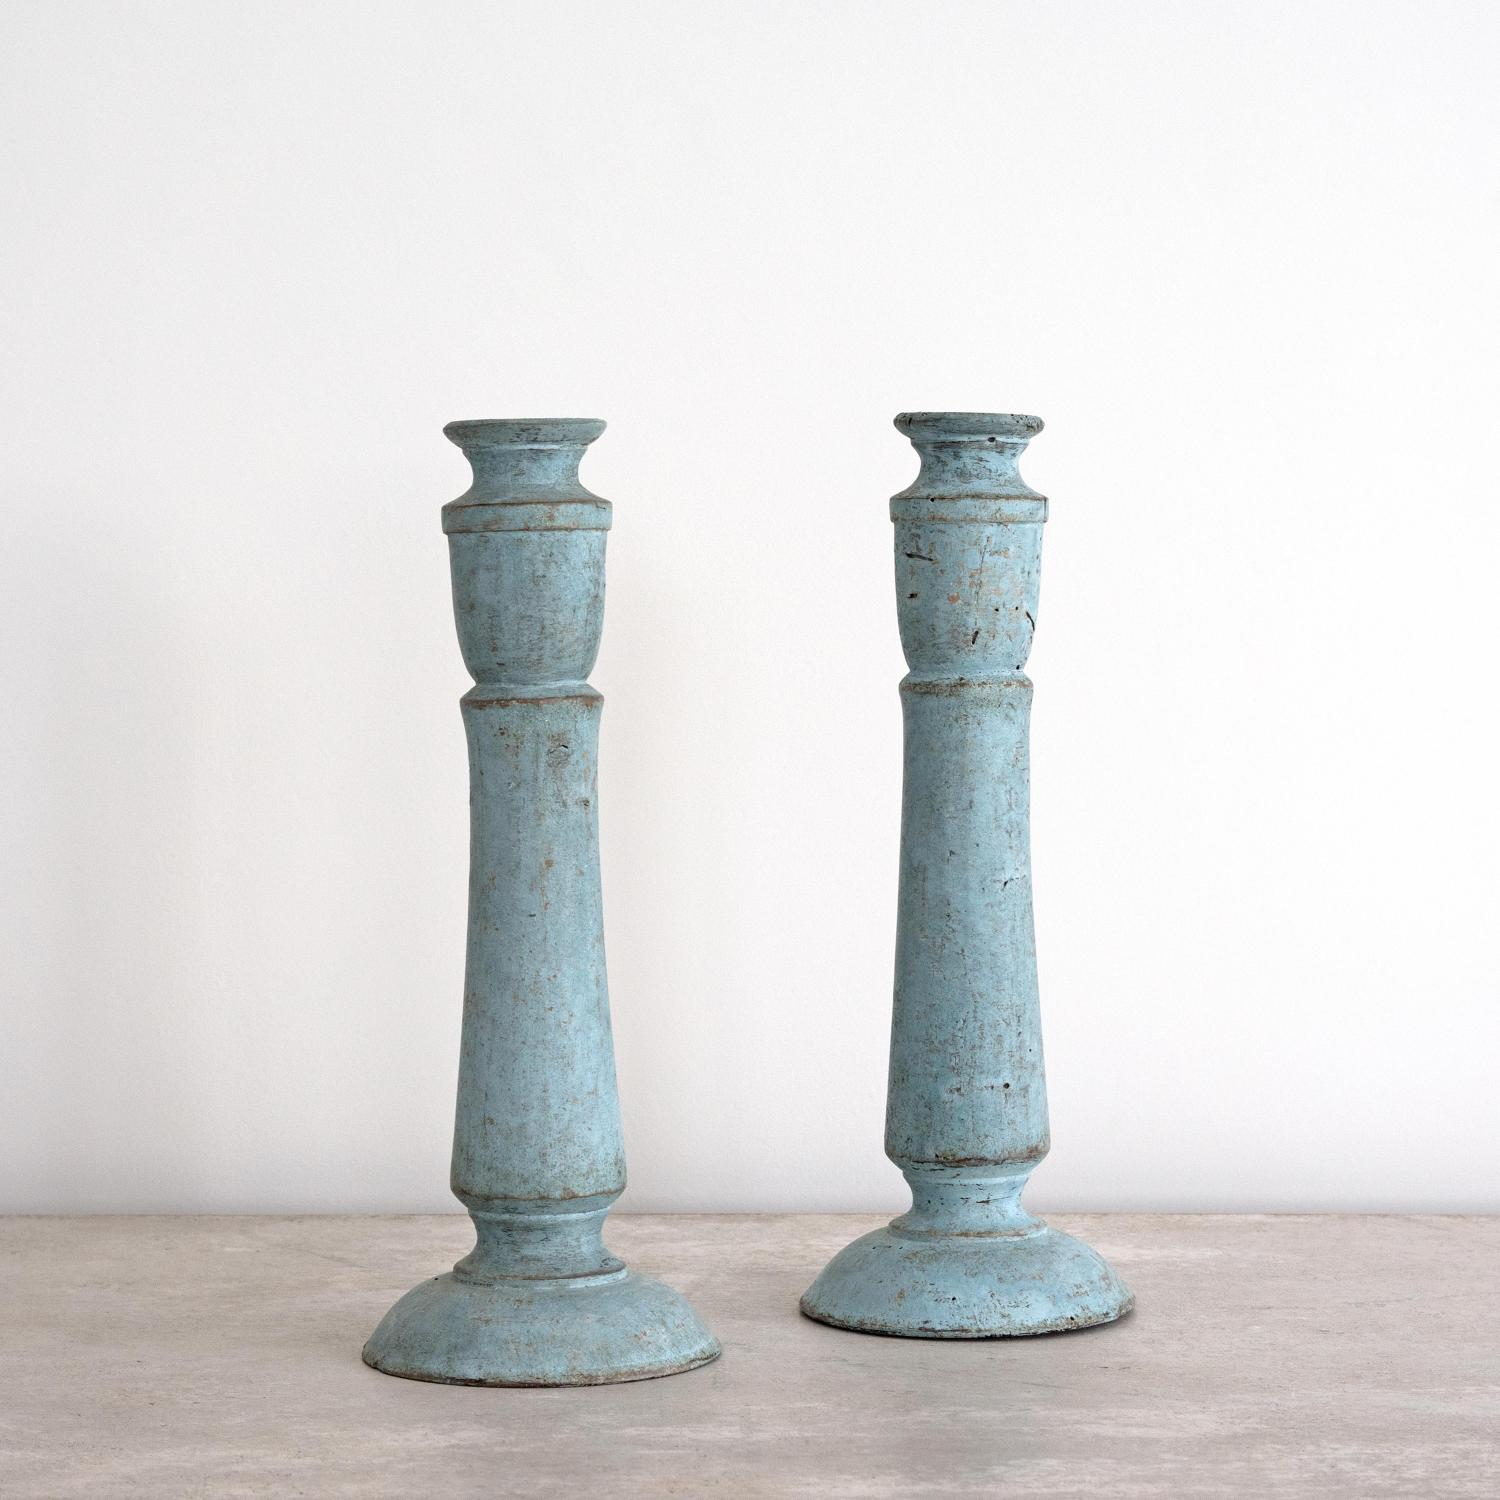 BEAUTIFUL 19TH CENTURY PALE BLUE SWEDISH CANDLESTICKS